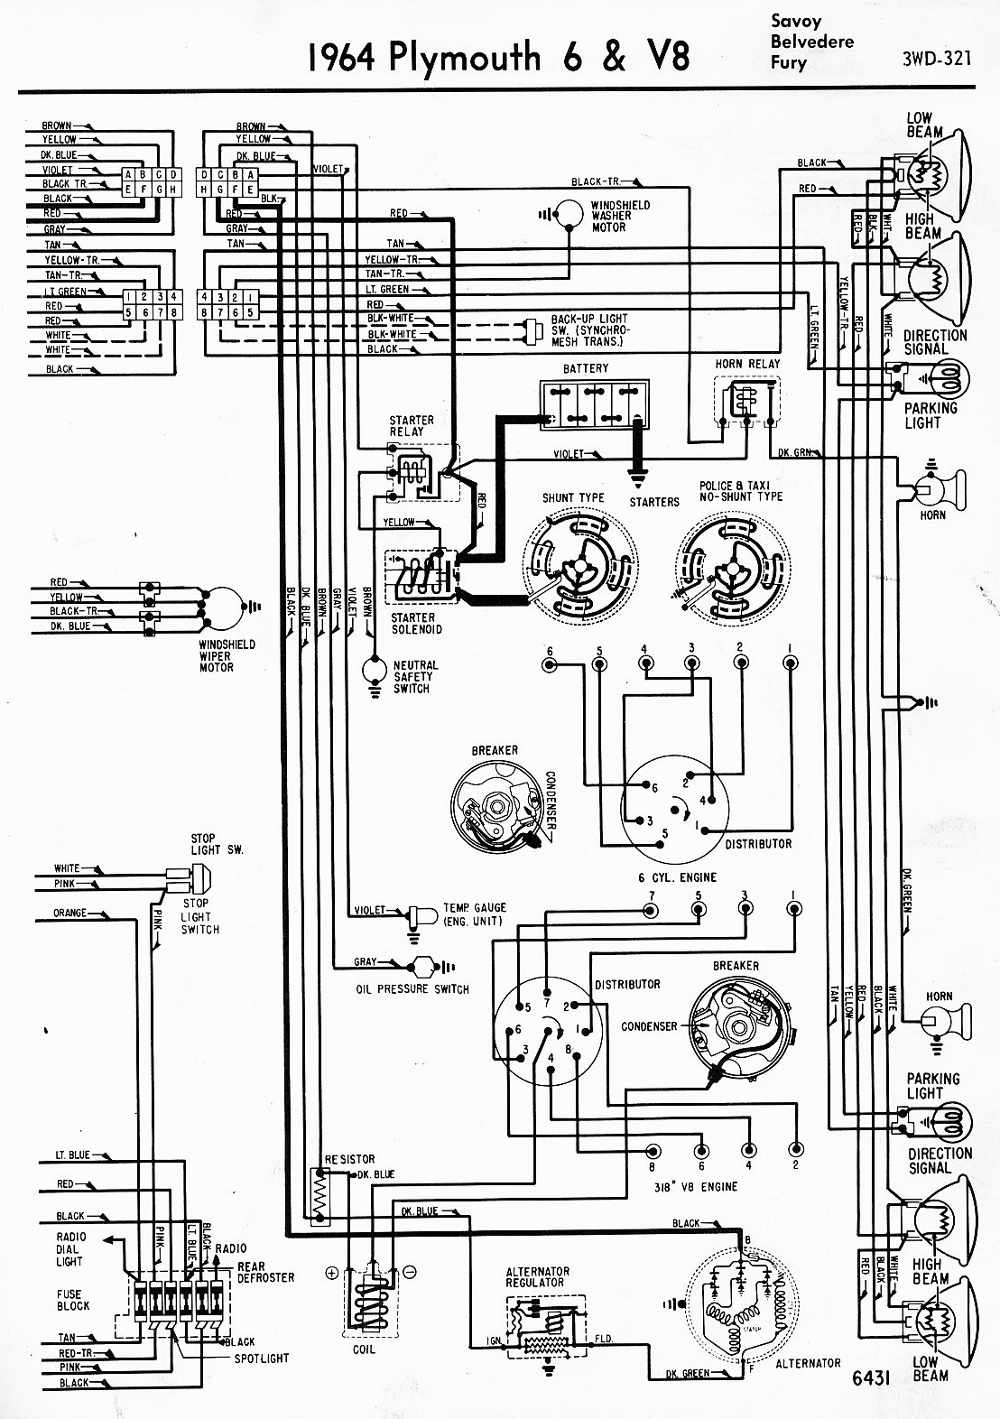 wiring diagrams of 1959 plymouth v8 all models